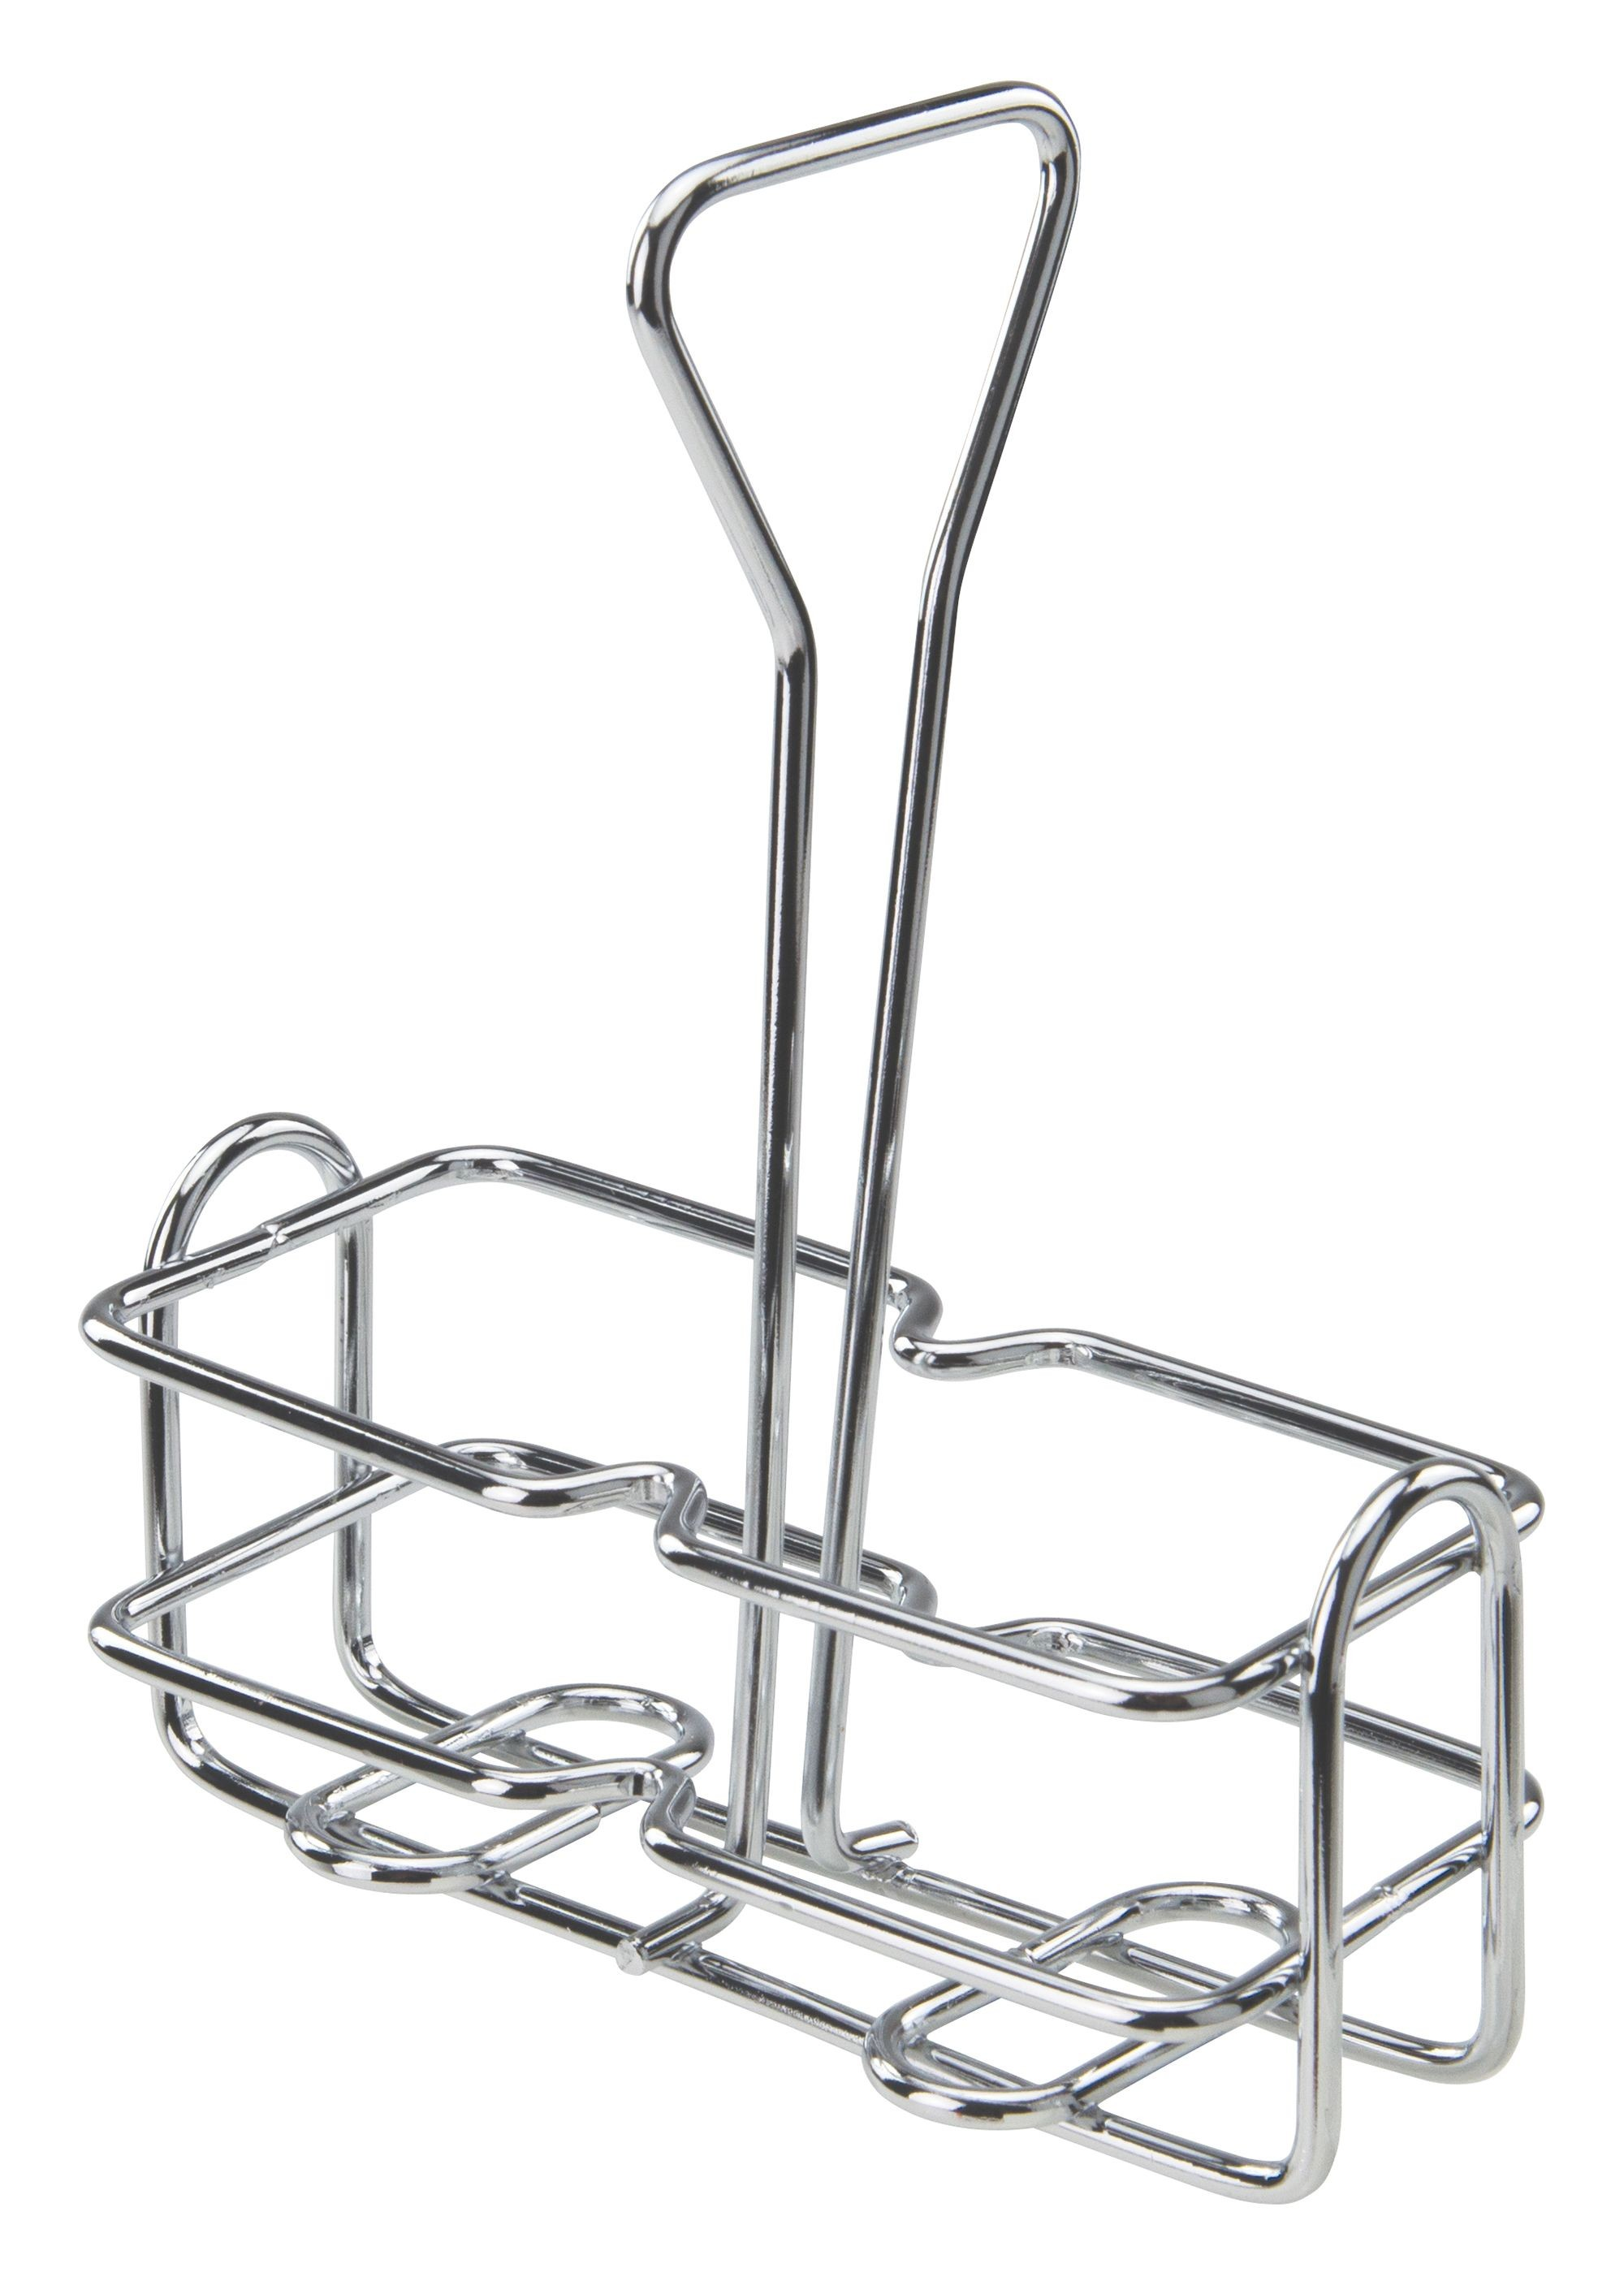 Chrome-Plated Wire 6 Oz. Oil & Vinegar Holder Rack